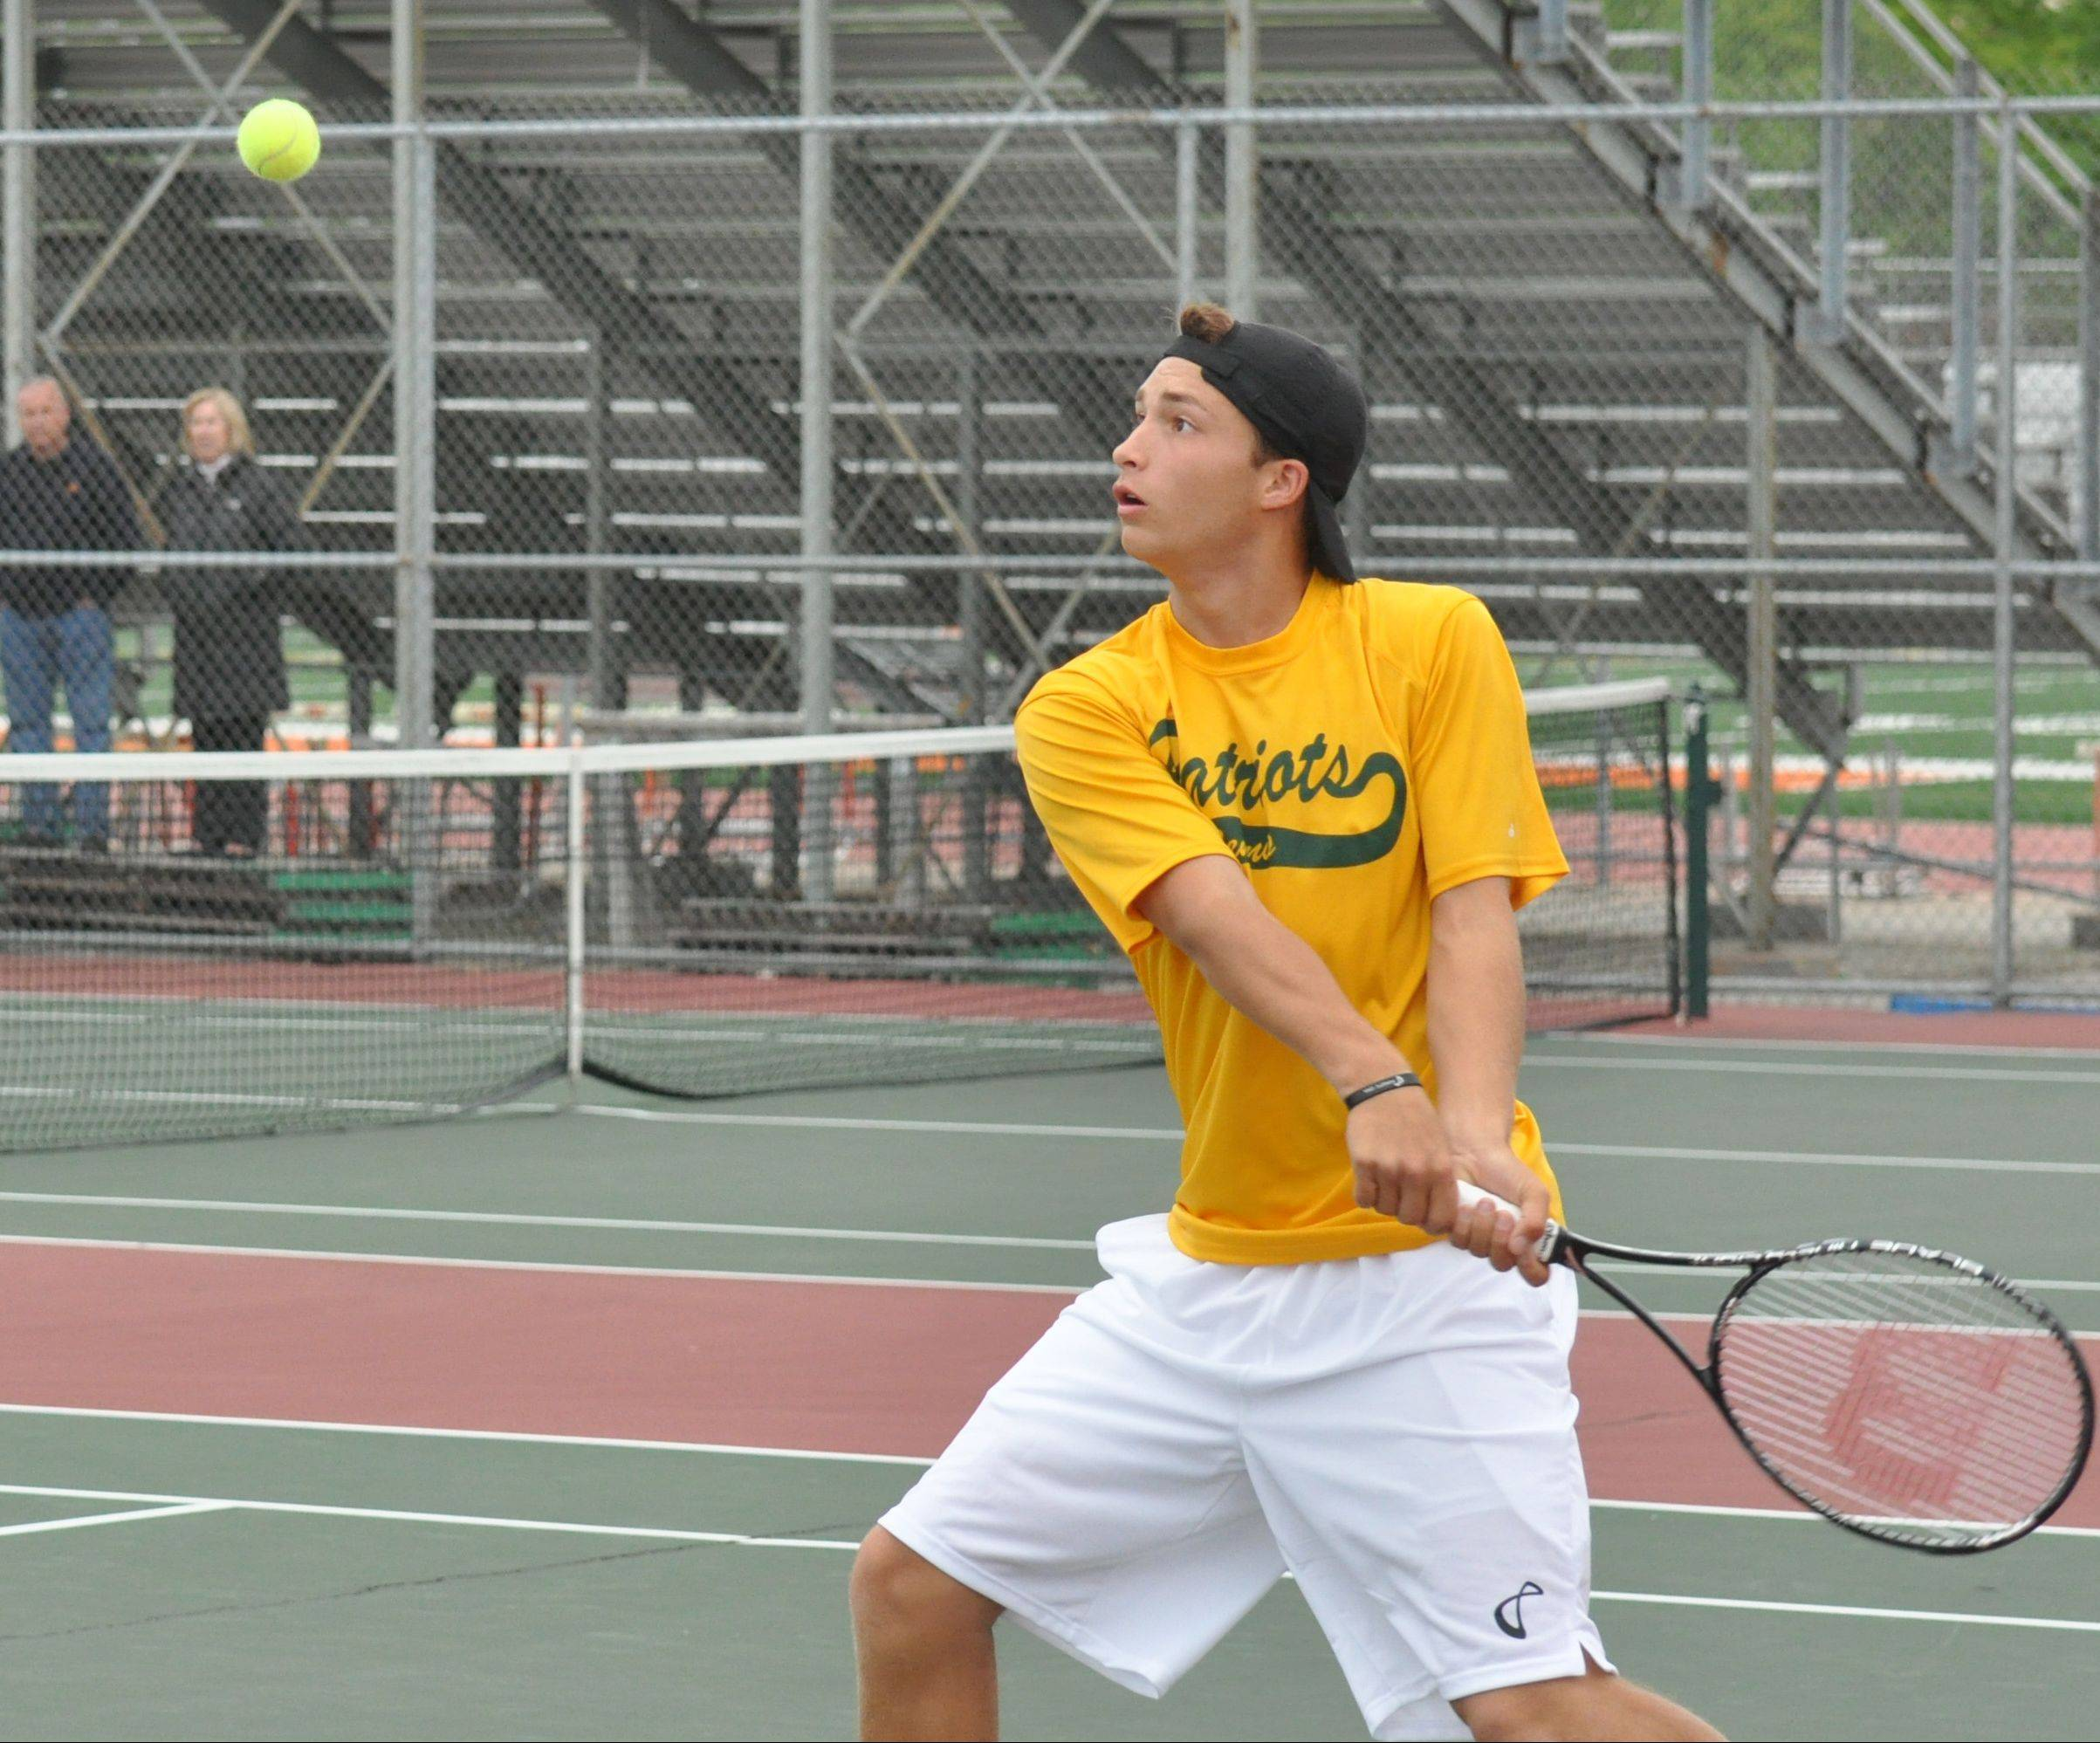 Colin Harvey of Stevenson competes at the boys tennis state tournament Saturday at Hersey.